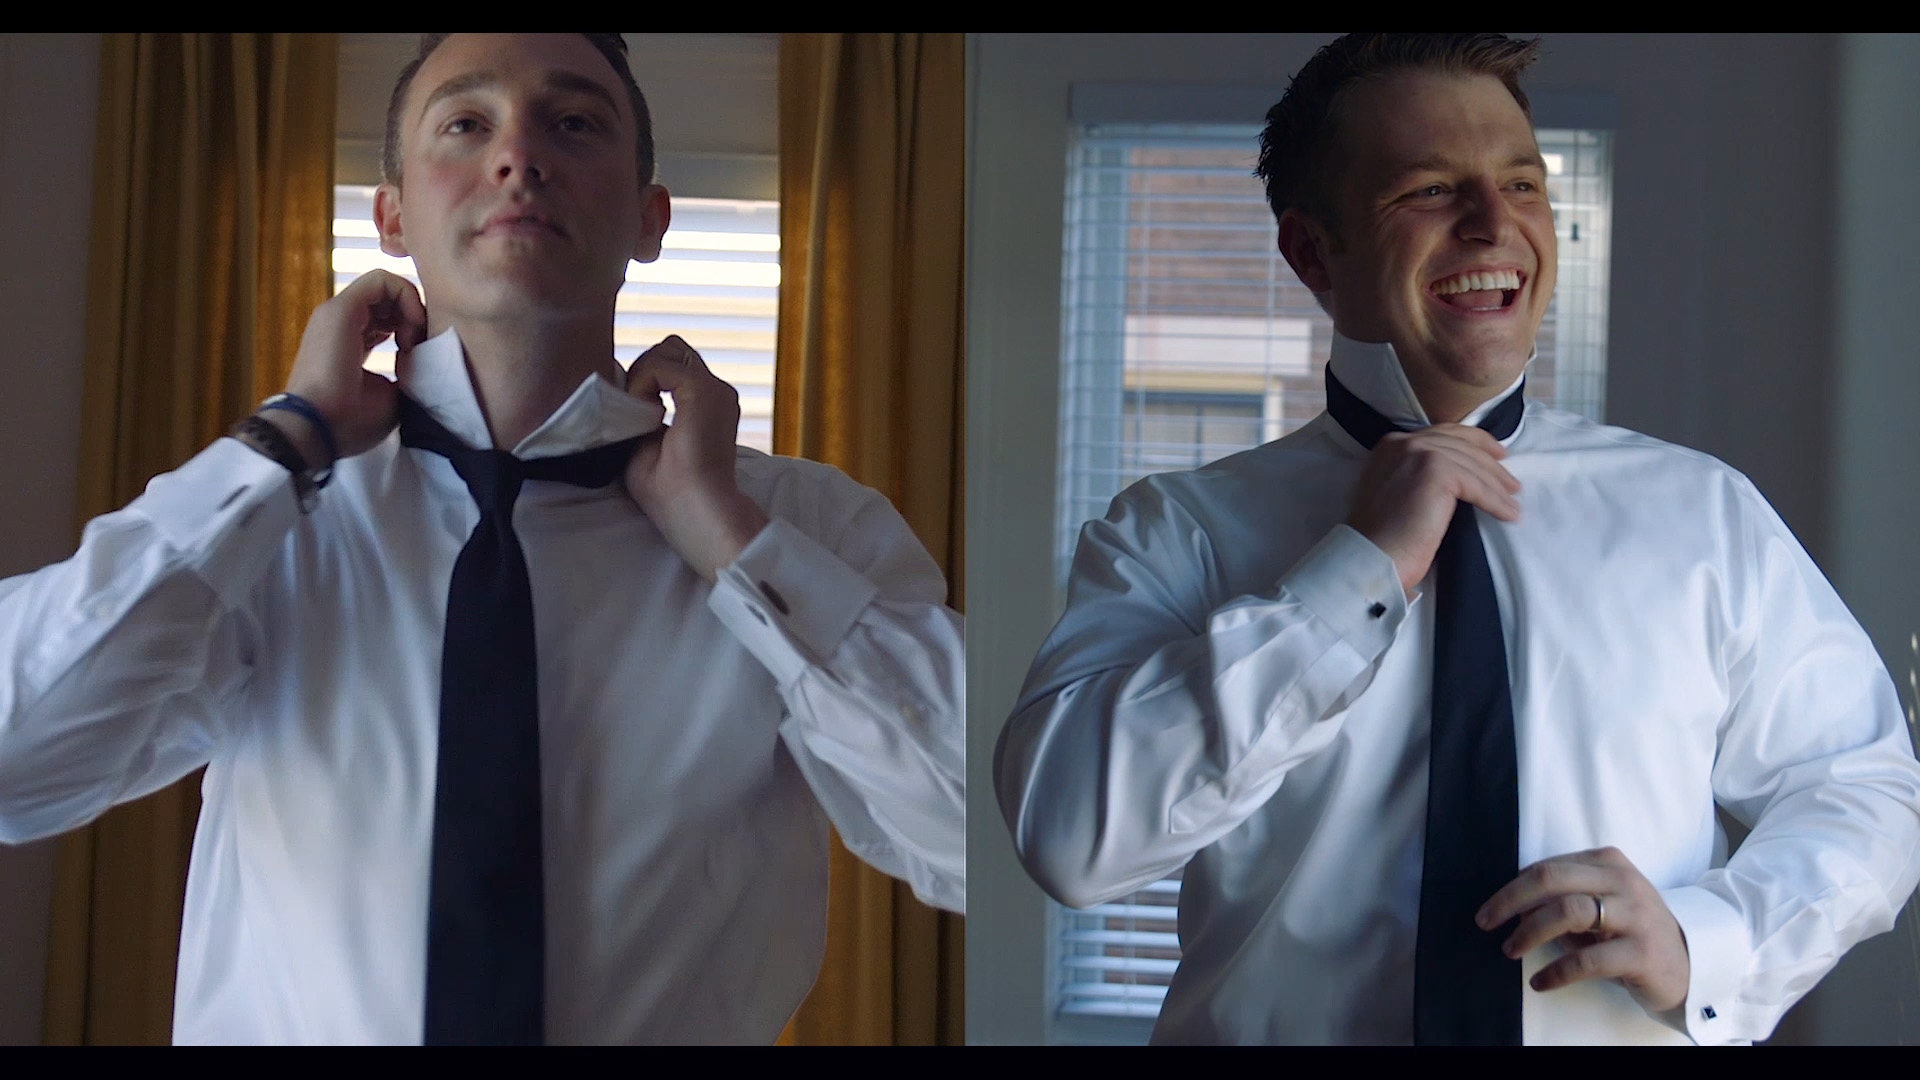 Logan & Clark prepare in their Lexington home. Same-Sex wedding film.